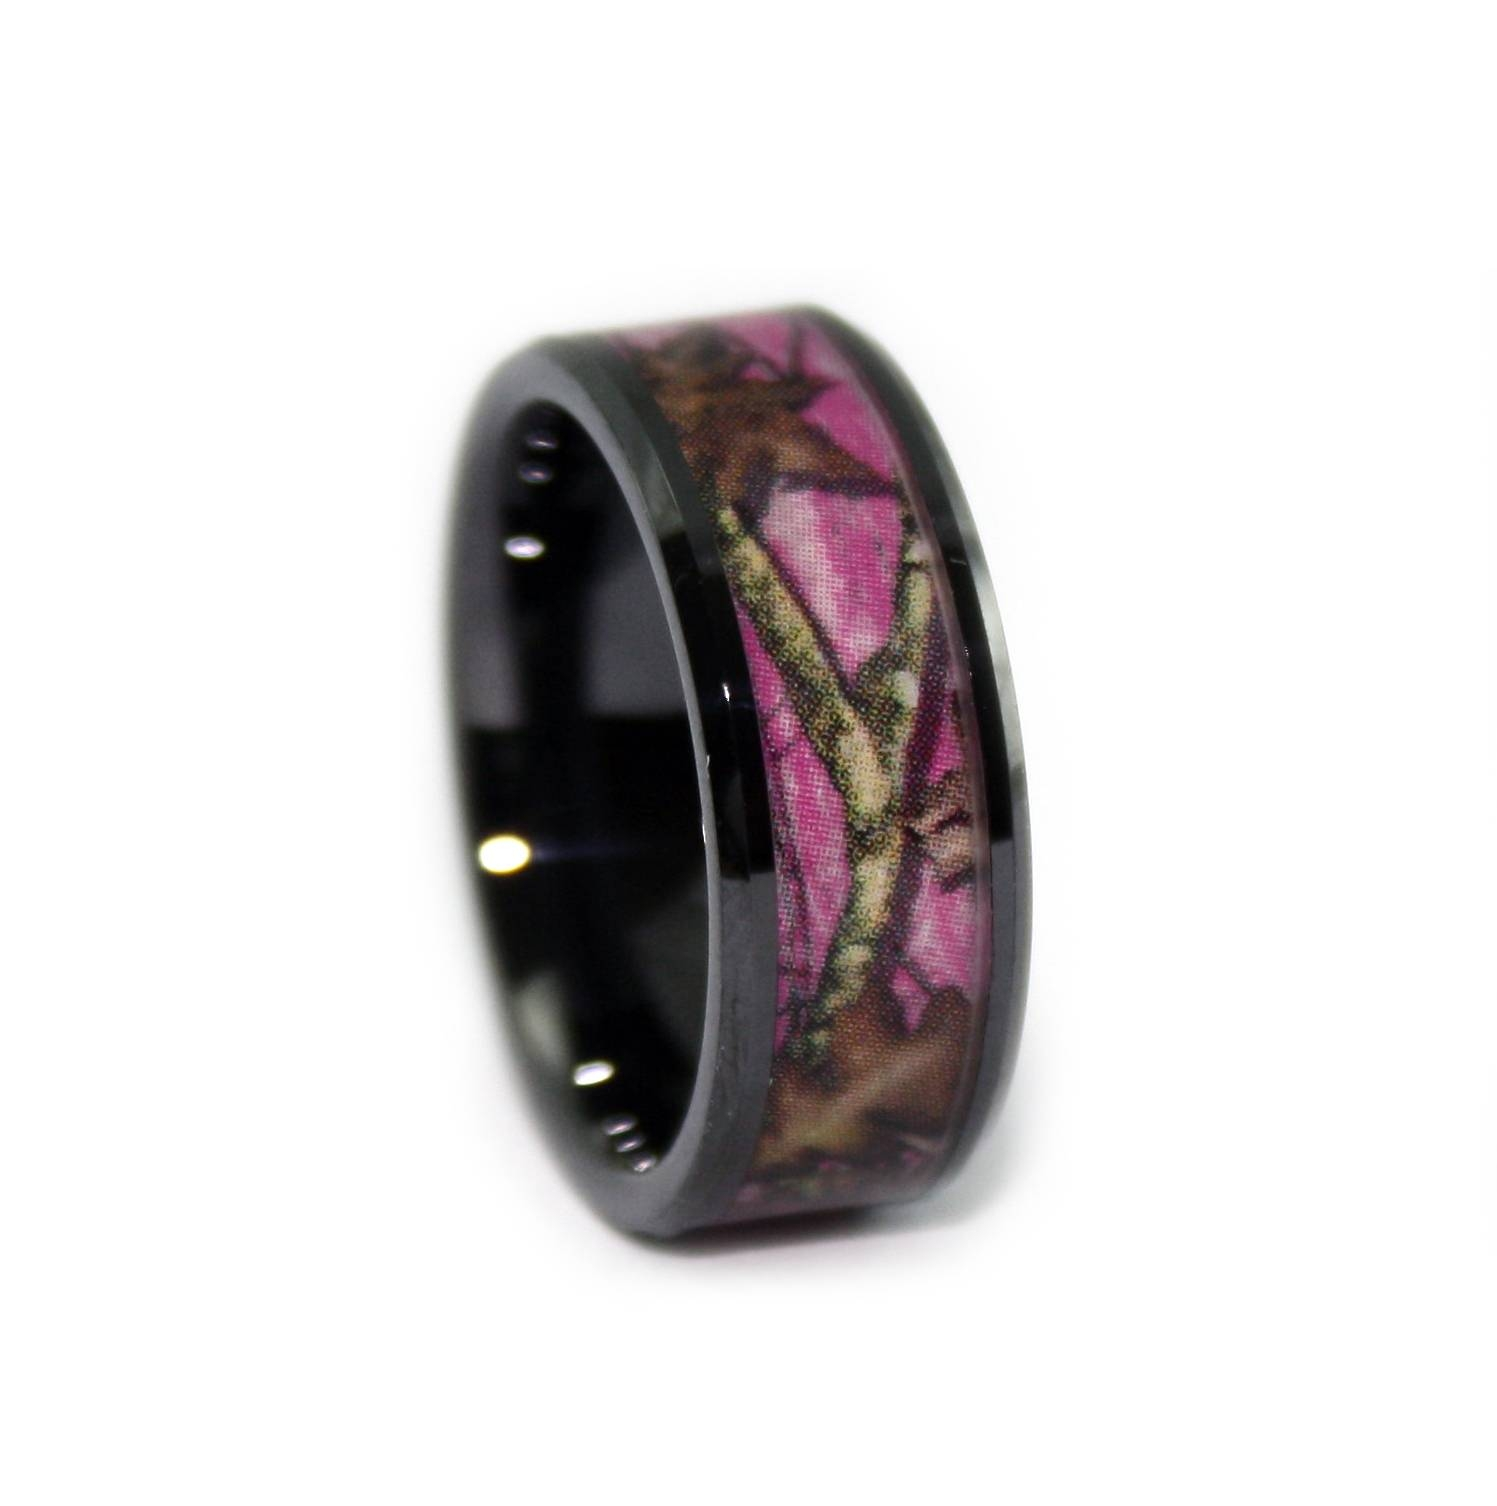 51 Camo Wedding Band Sets, Camo Wedding Ring Set For Him And Her Pertaining To His And Hers Camo Wedding Bands (View 4 of 15)